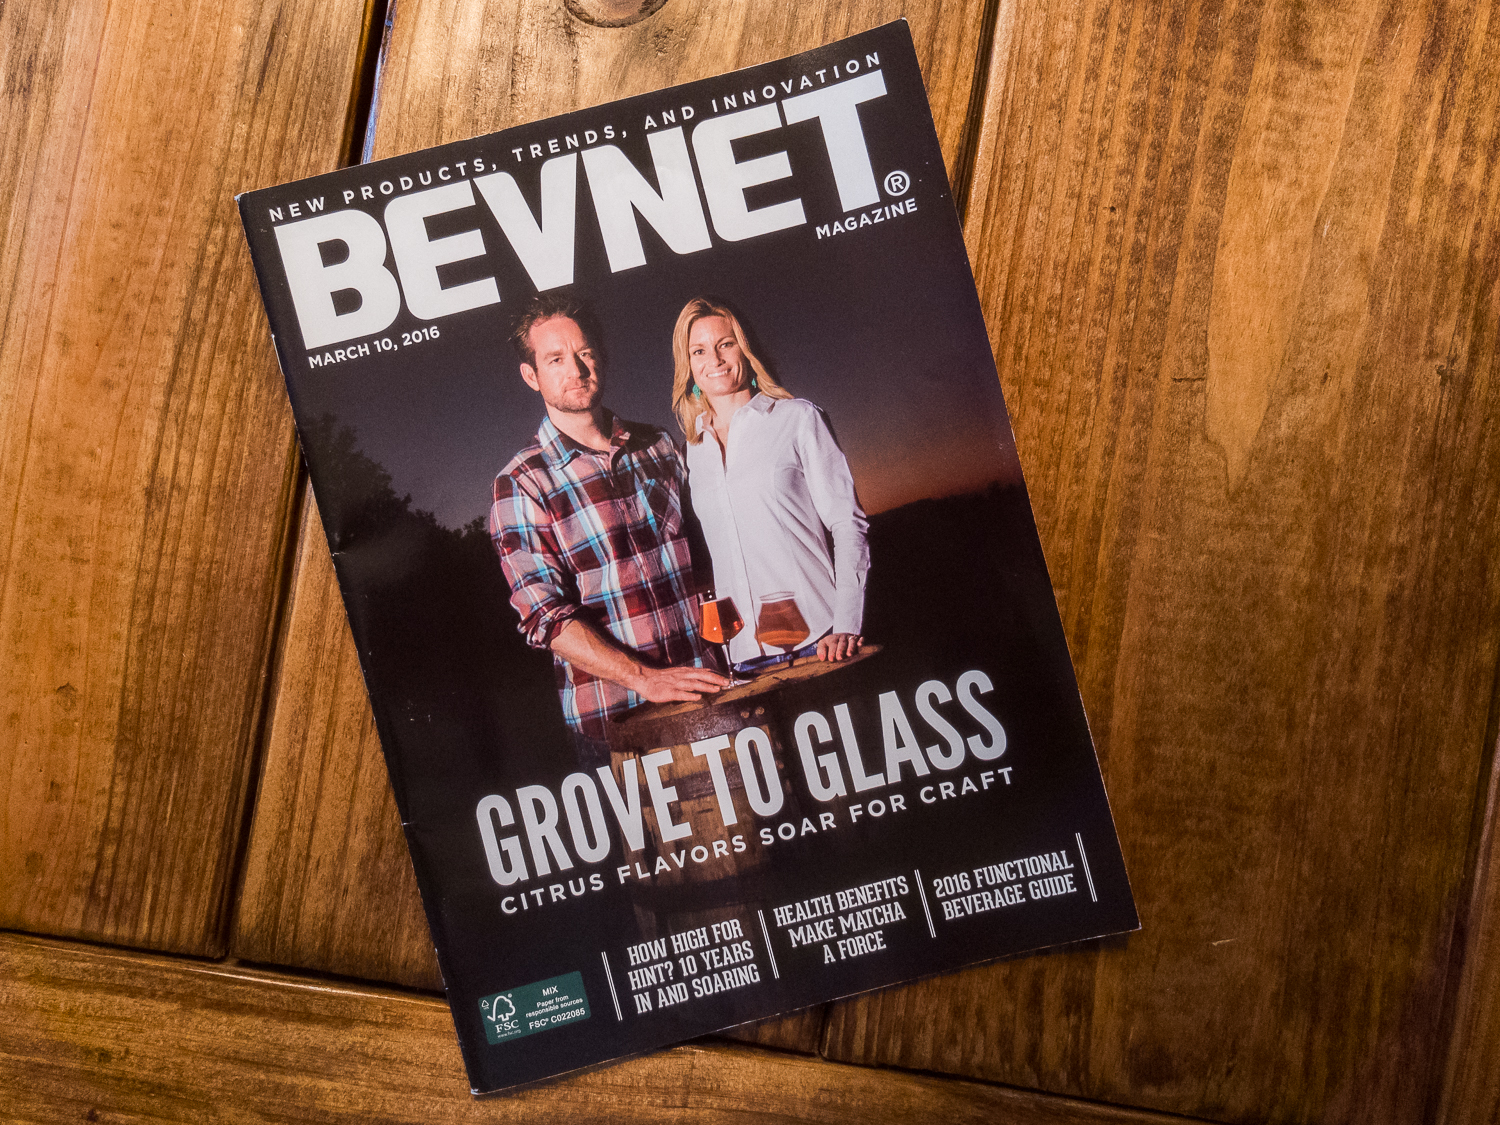 BevNet Magazine  Cover Shot With Alden and Valerie Bing of Orchid Island Brewery